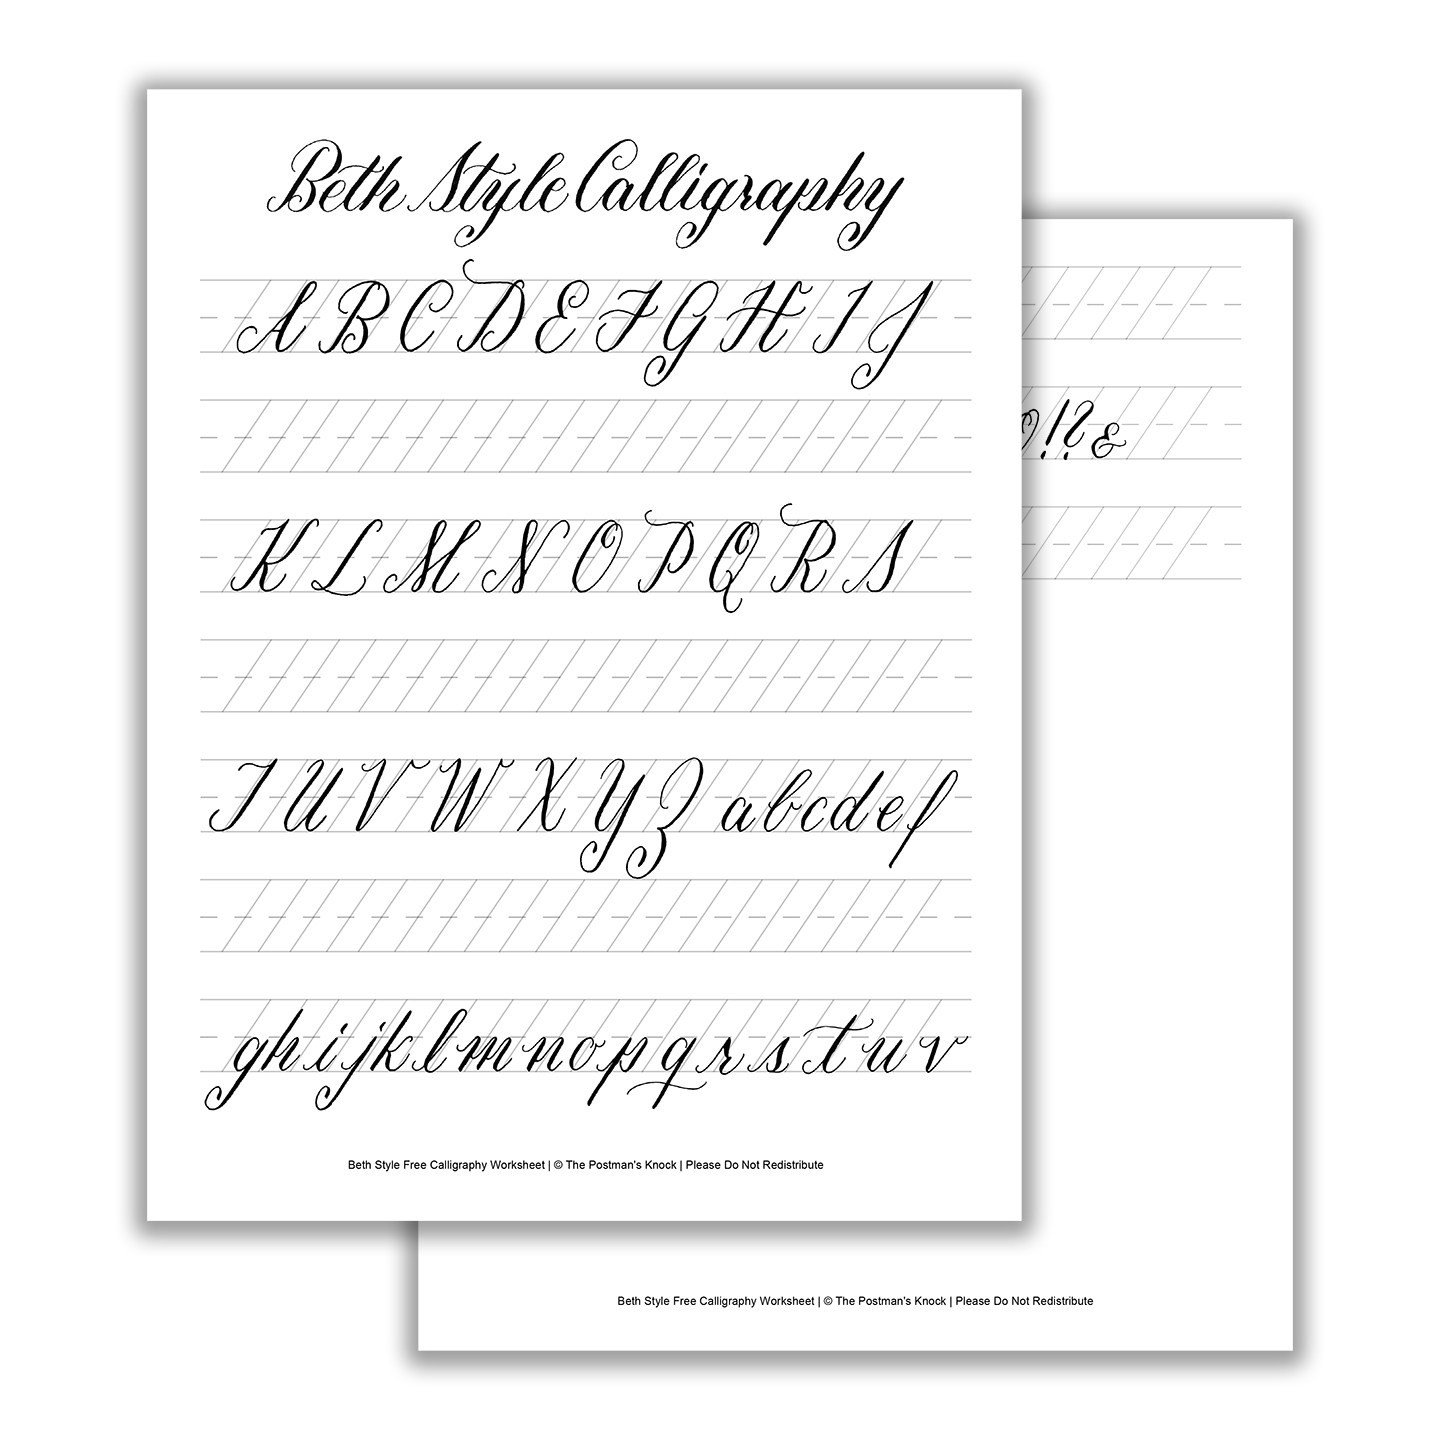 Learn Calligraphy Worksheets Printable Calligraphy Exemplar Beth Style